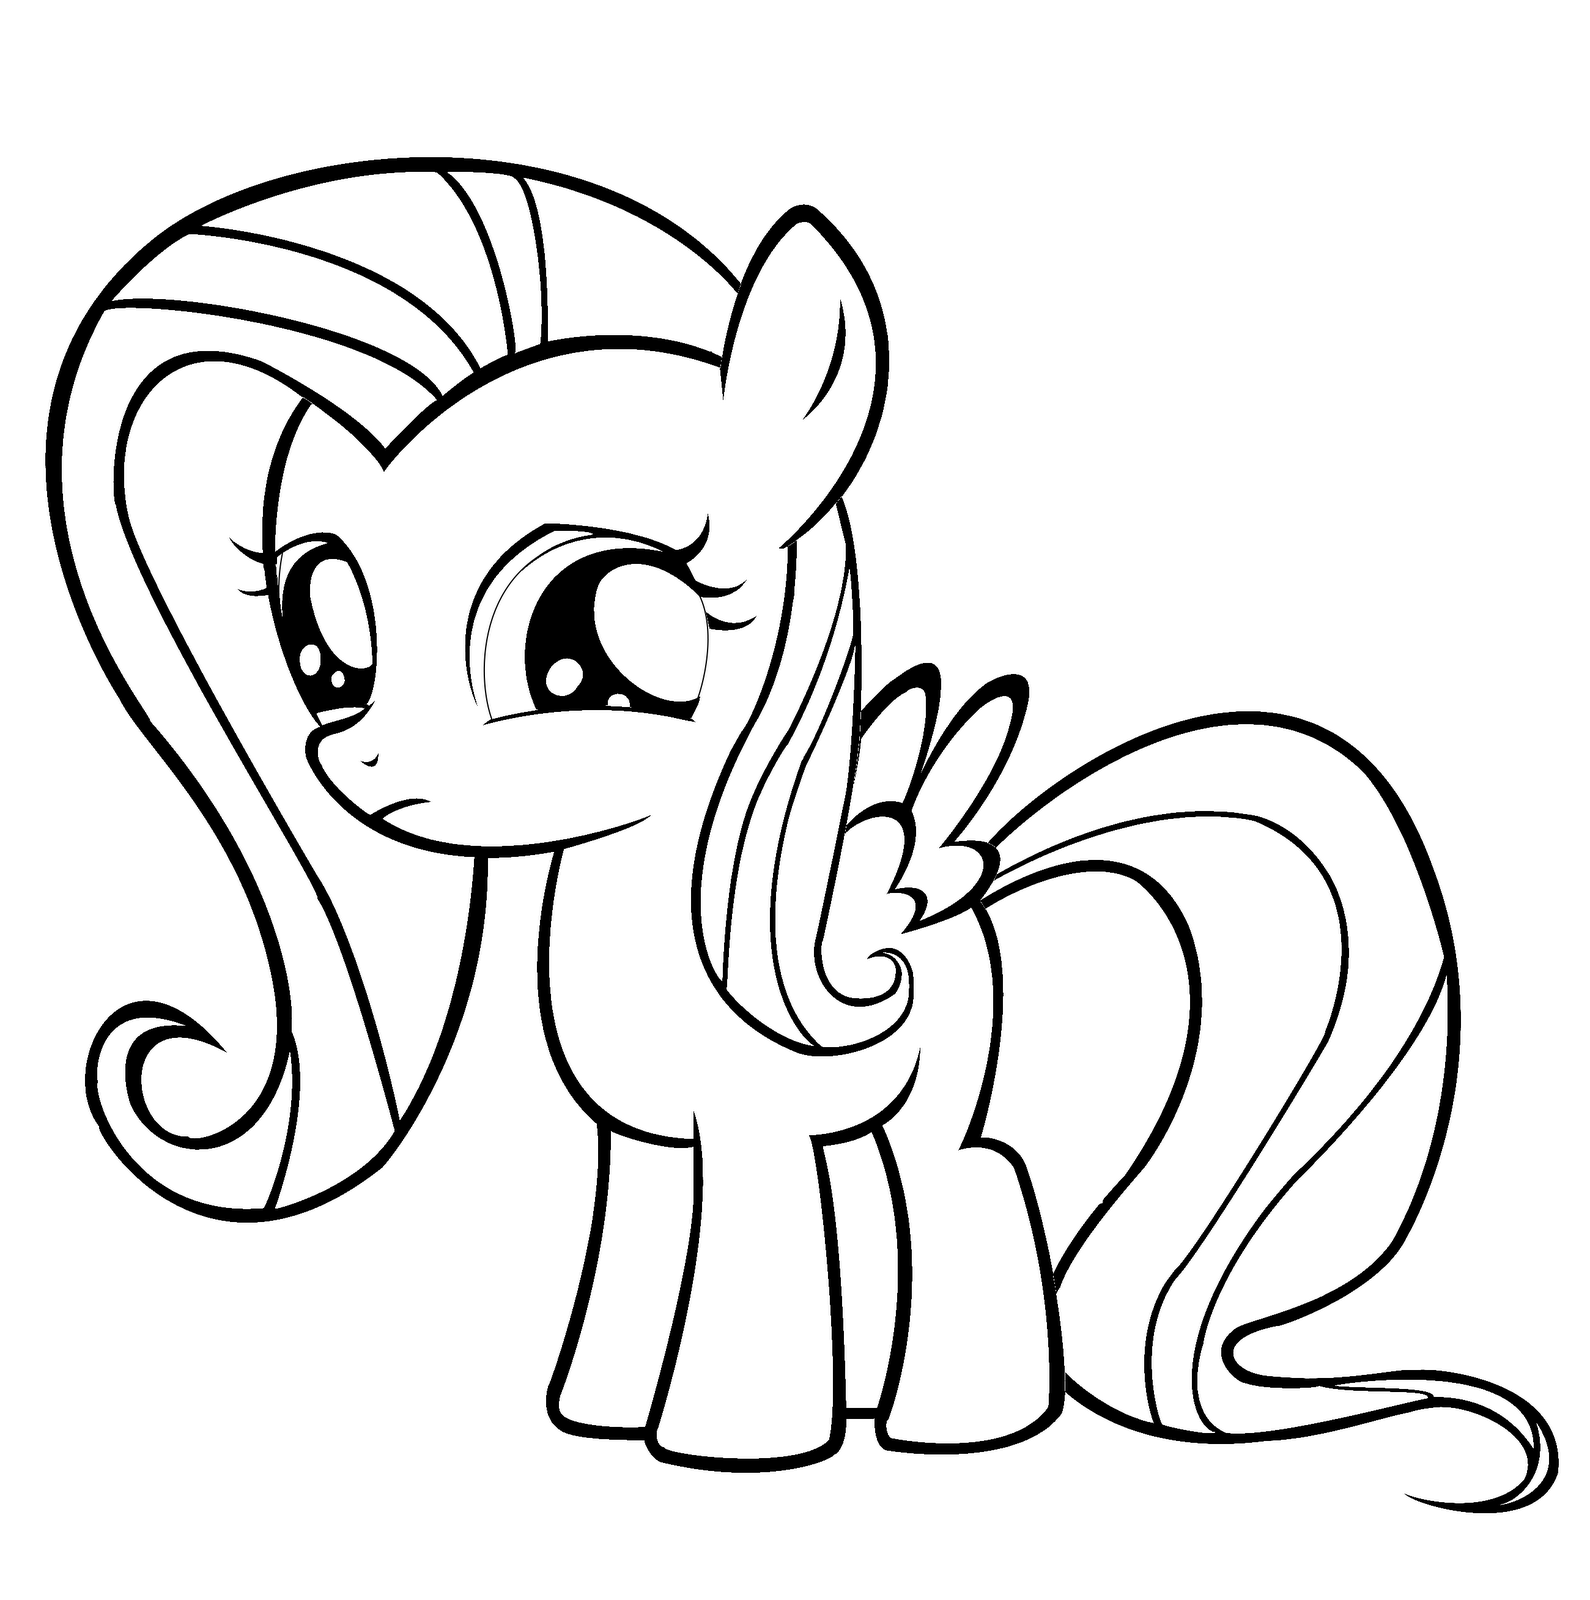 little pony to color my little pony coloring page coloring home little to color pony